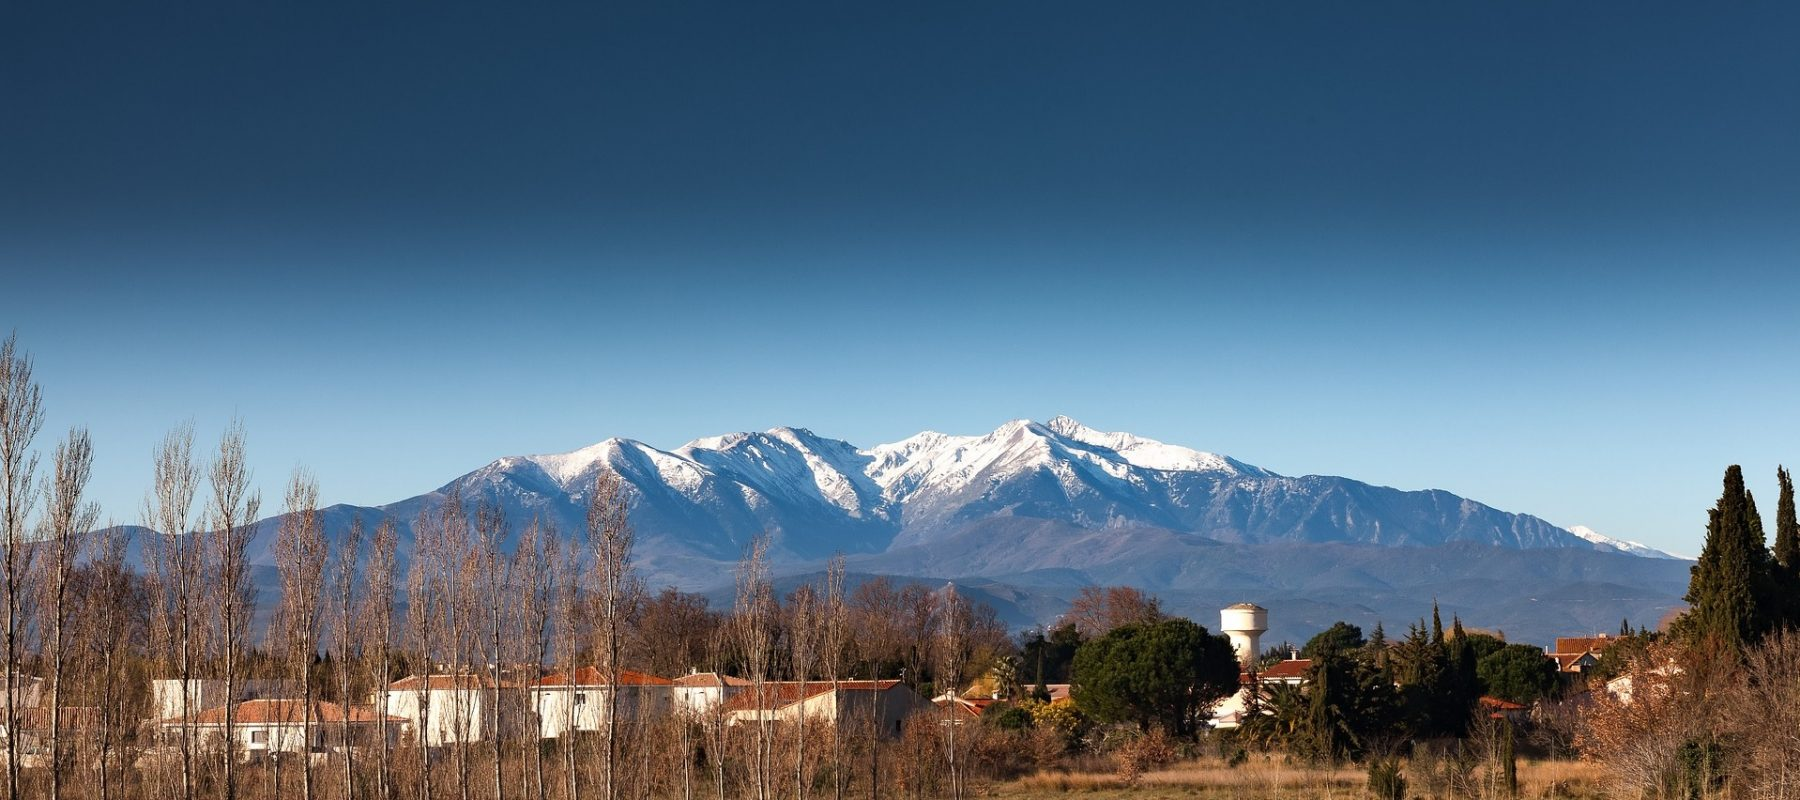 Breath taking views of the Pyrenees